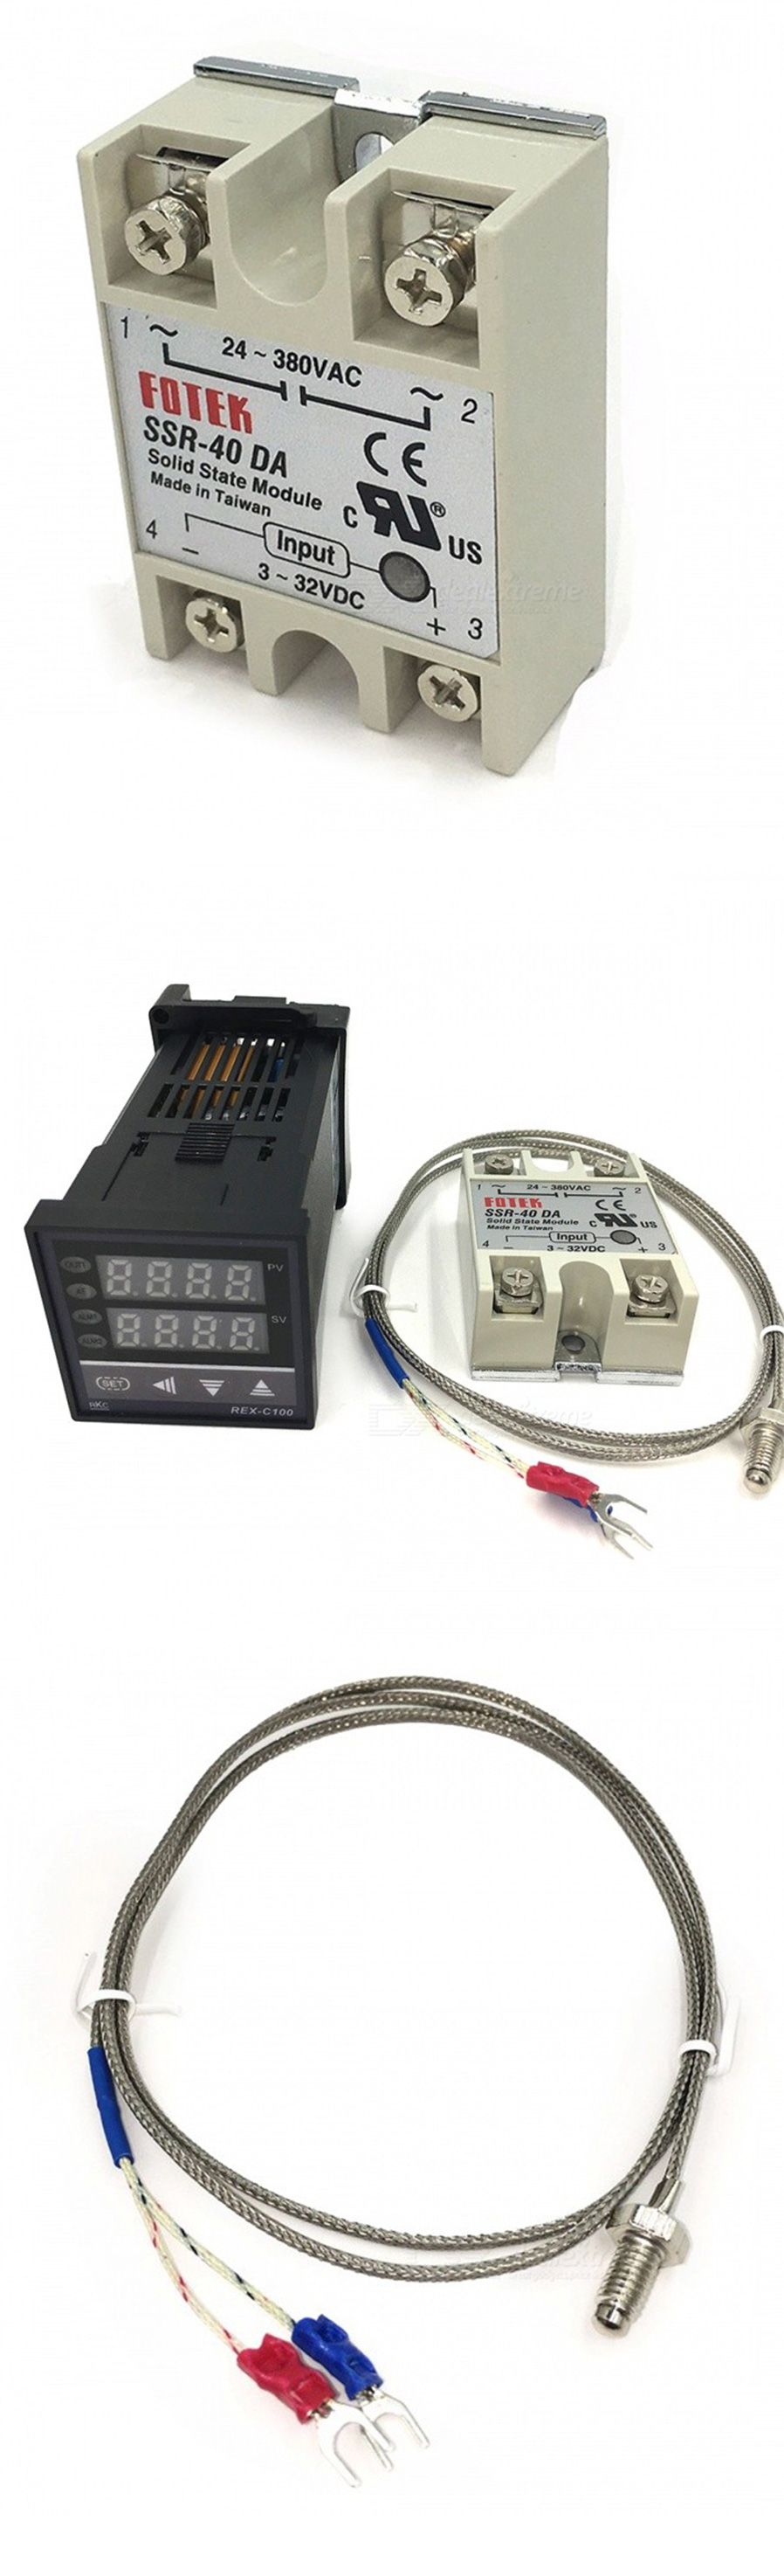 Rex C100 Thermostat With Ssr Relay Probe Set Free Shipping Complete Package Pid Temperature Controller Thermocouple Sensor Diameter5mm 3 Rang 0 400 4 Internal Insulation Fiberglass 5 External Shielding Insulated Max40a